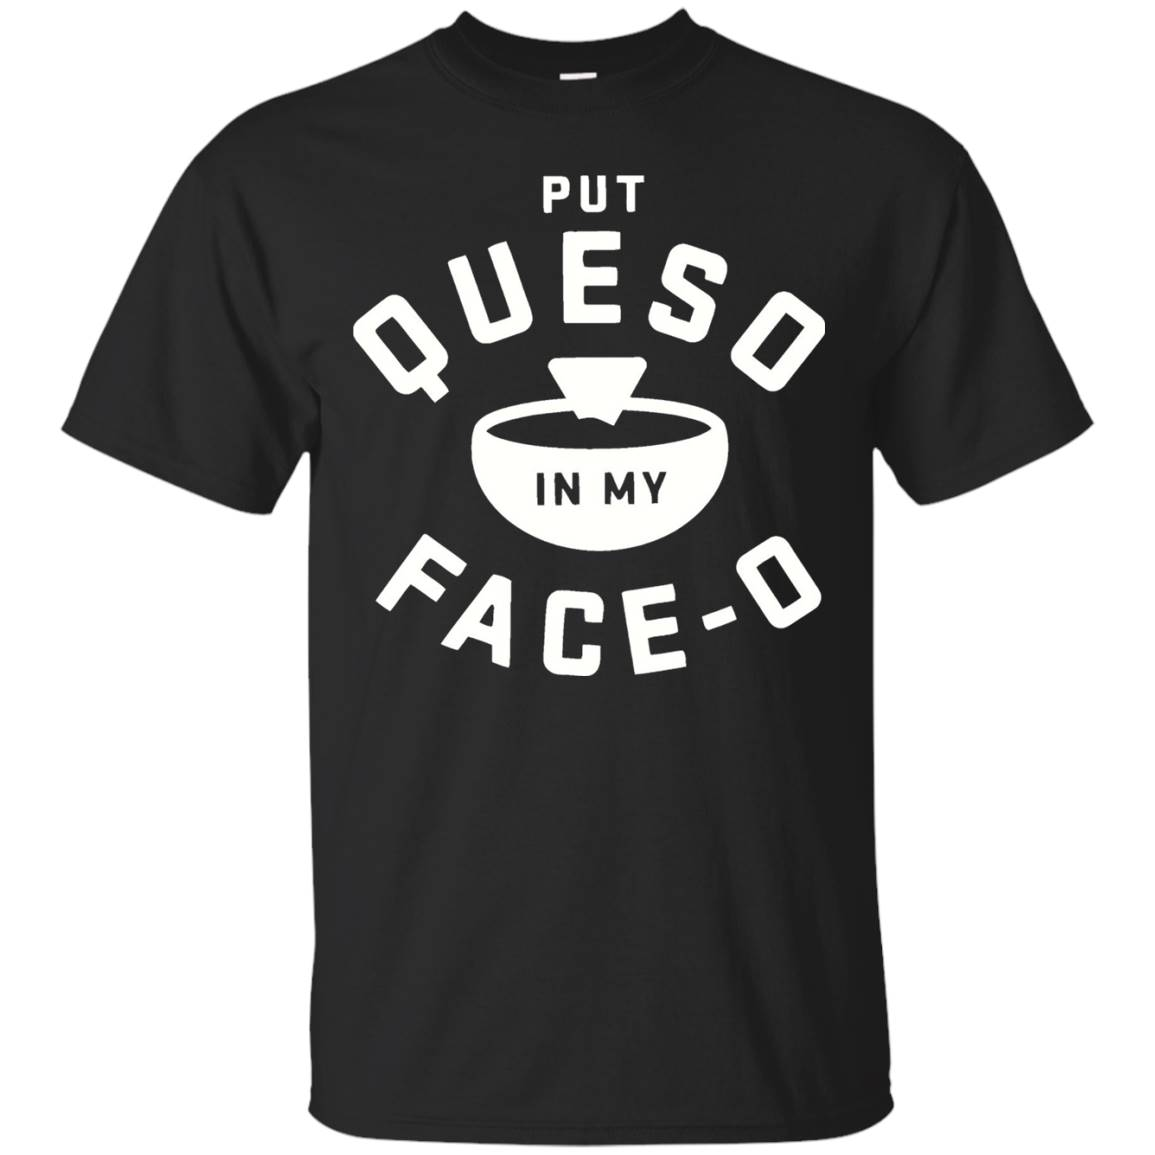 PUT QUESO IN MY FACE-O TEE T-SHIRT – T-Shirt